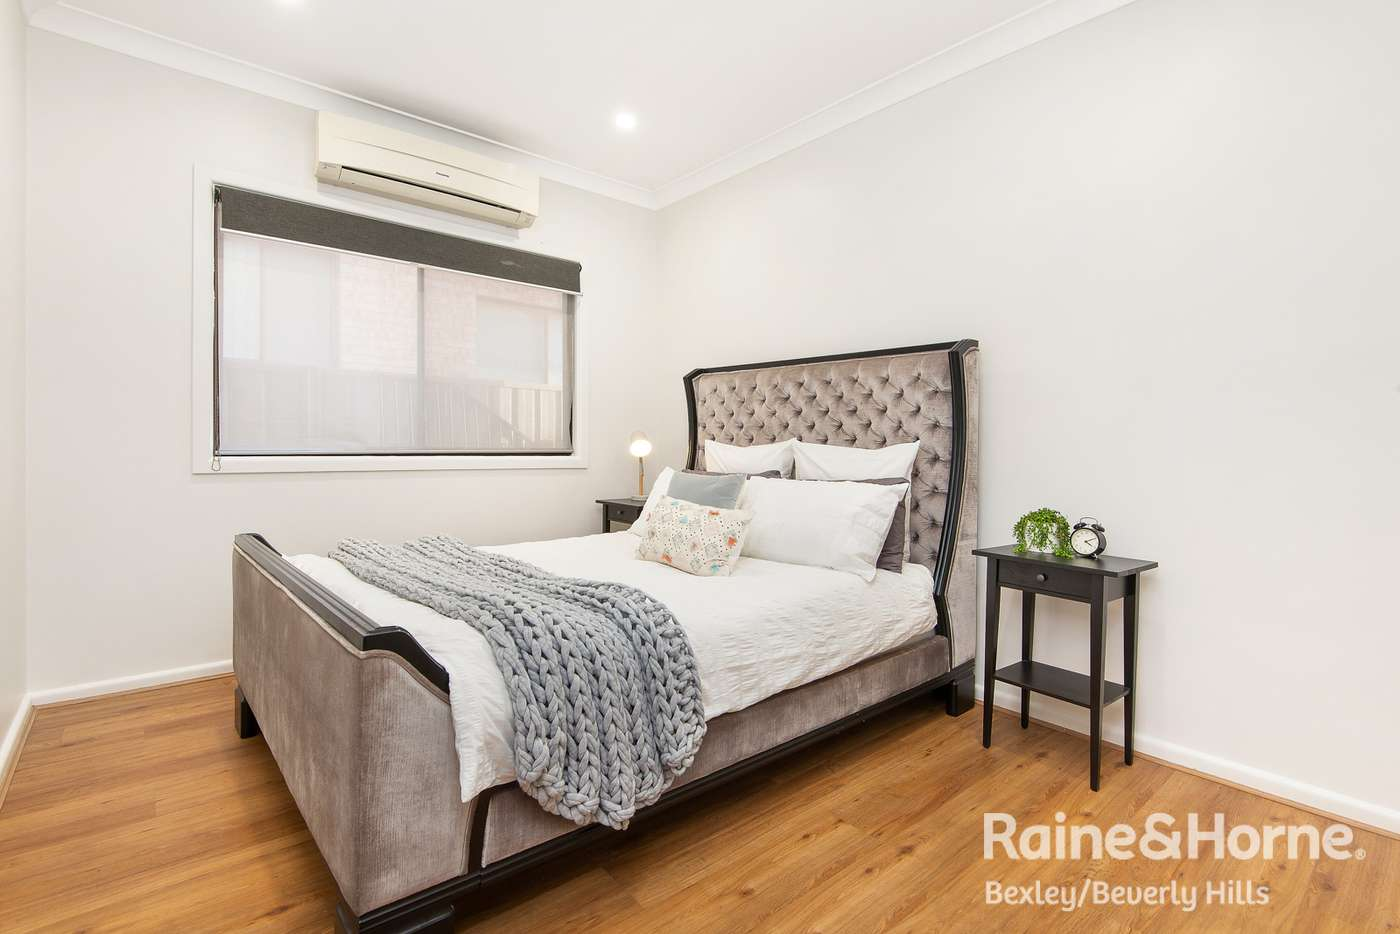 Sixth view of Homely house listing, 12 John Street, Bexley NSW 2207